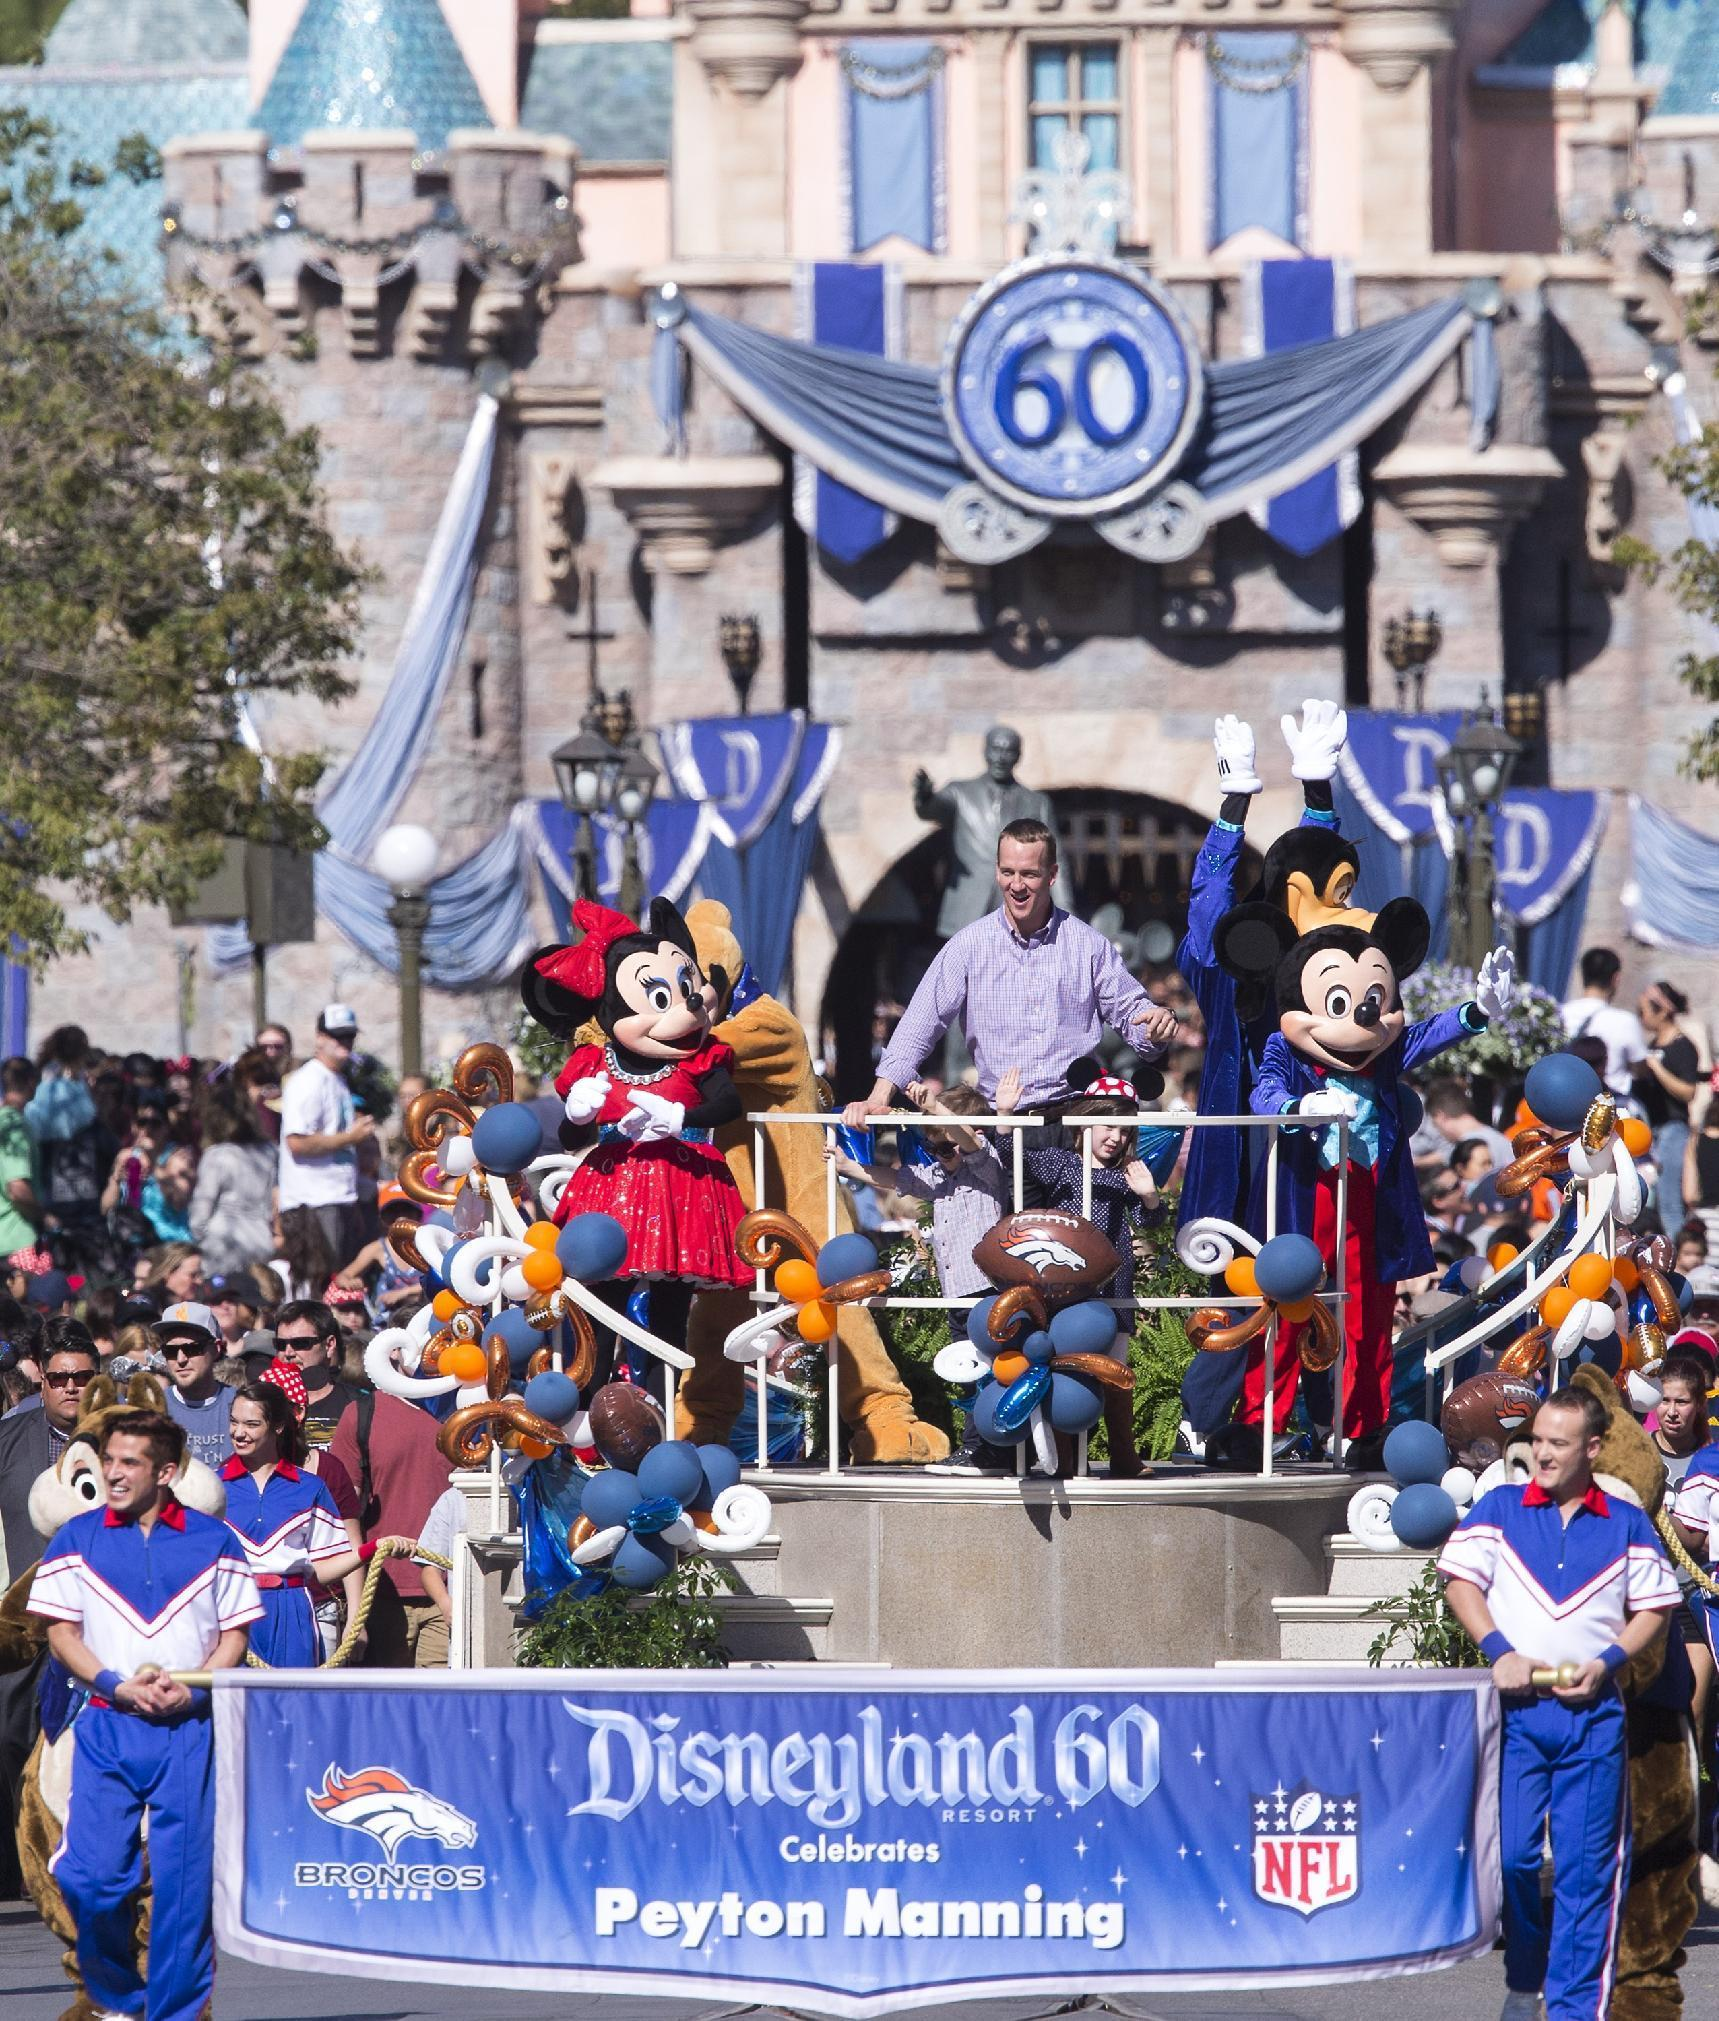 Peyton Manning celebrates Super Bowl 50 win at Disneyland